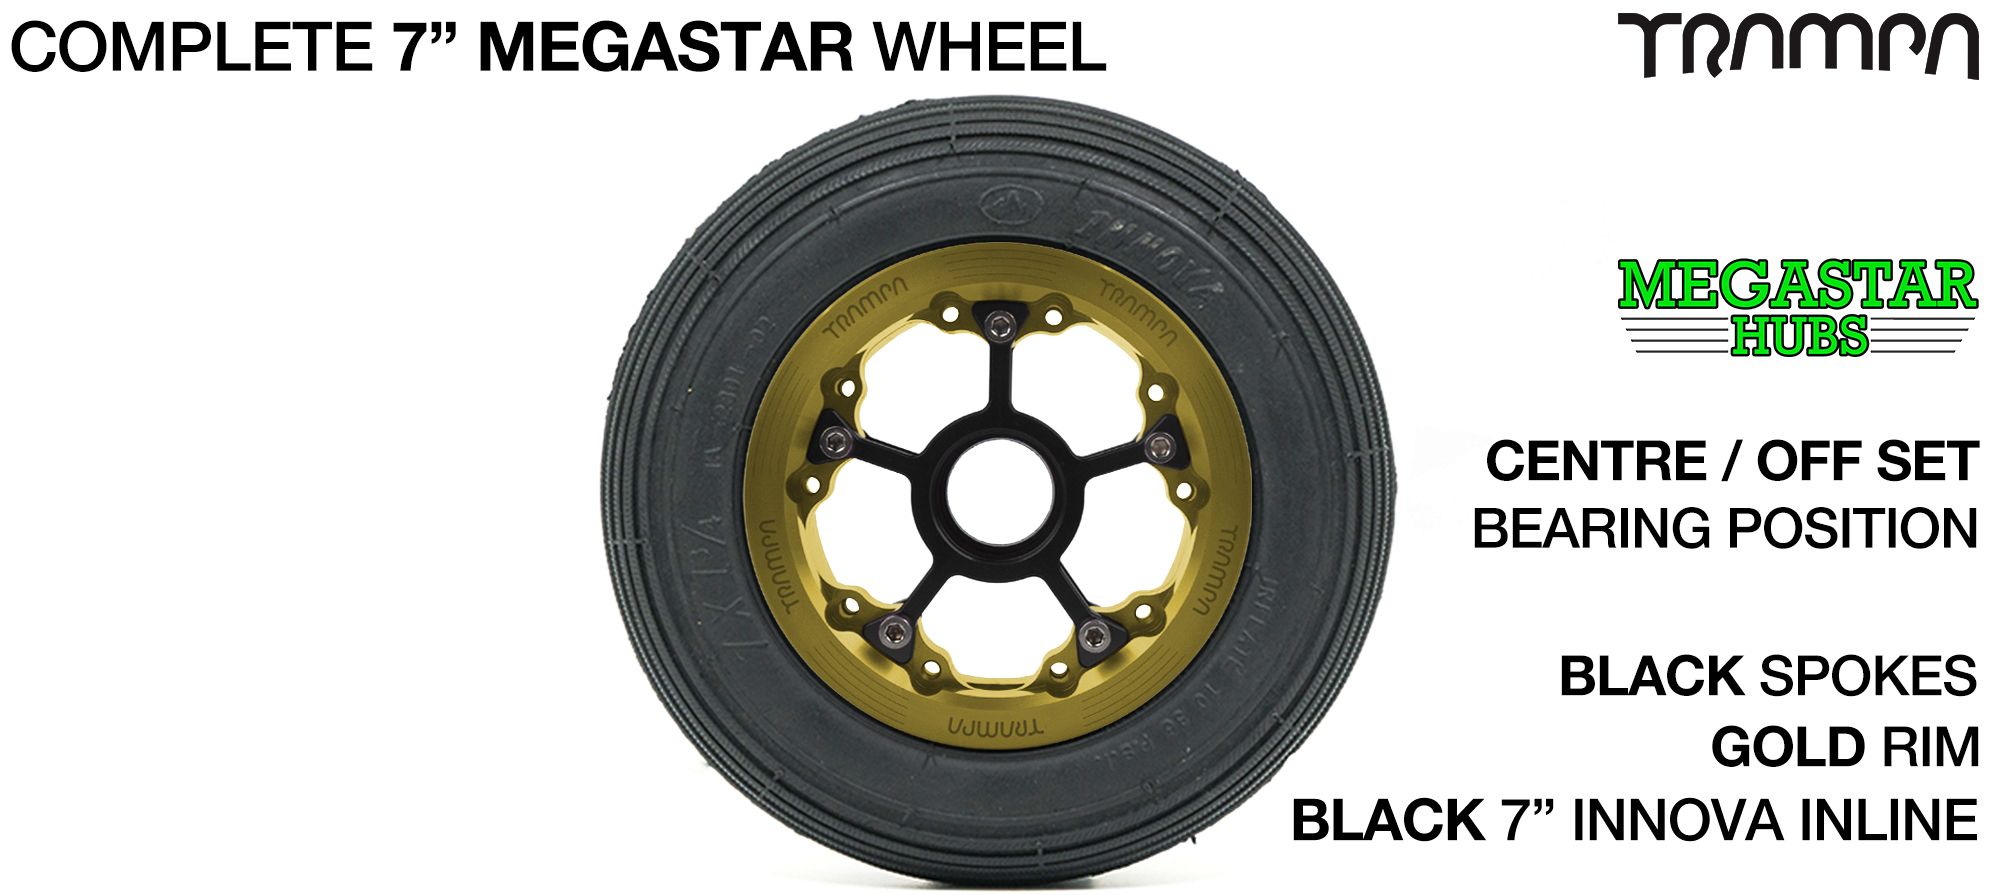 SILVER MEGASTAR Rims with BLACK Spokes & 7 Inch Tyres